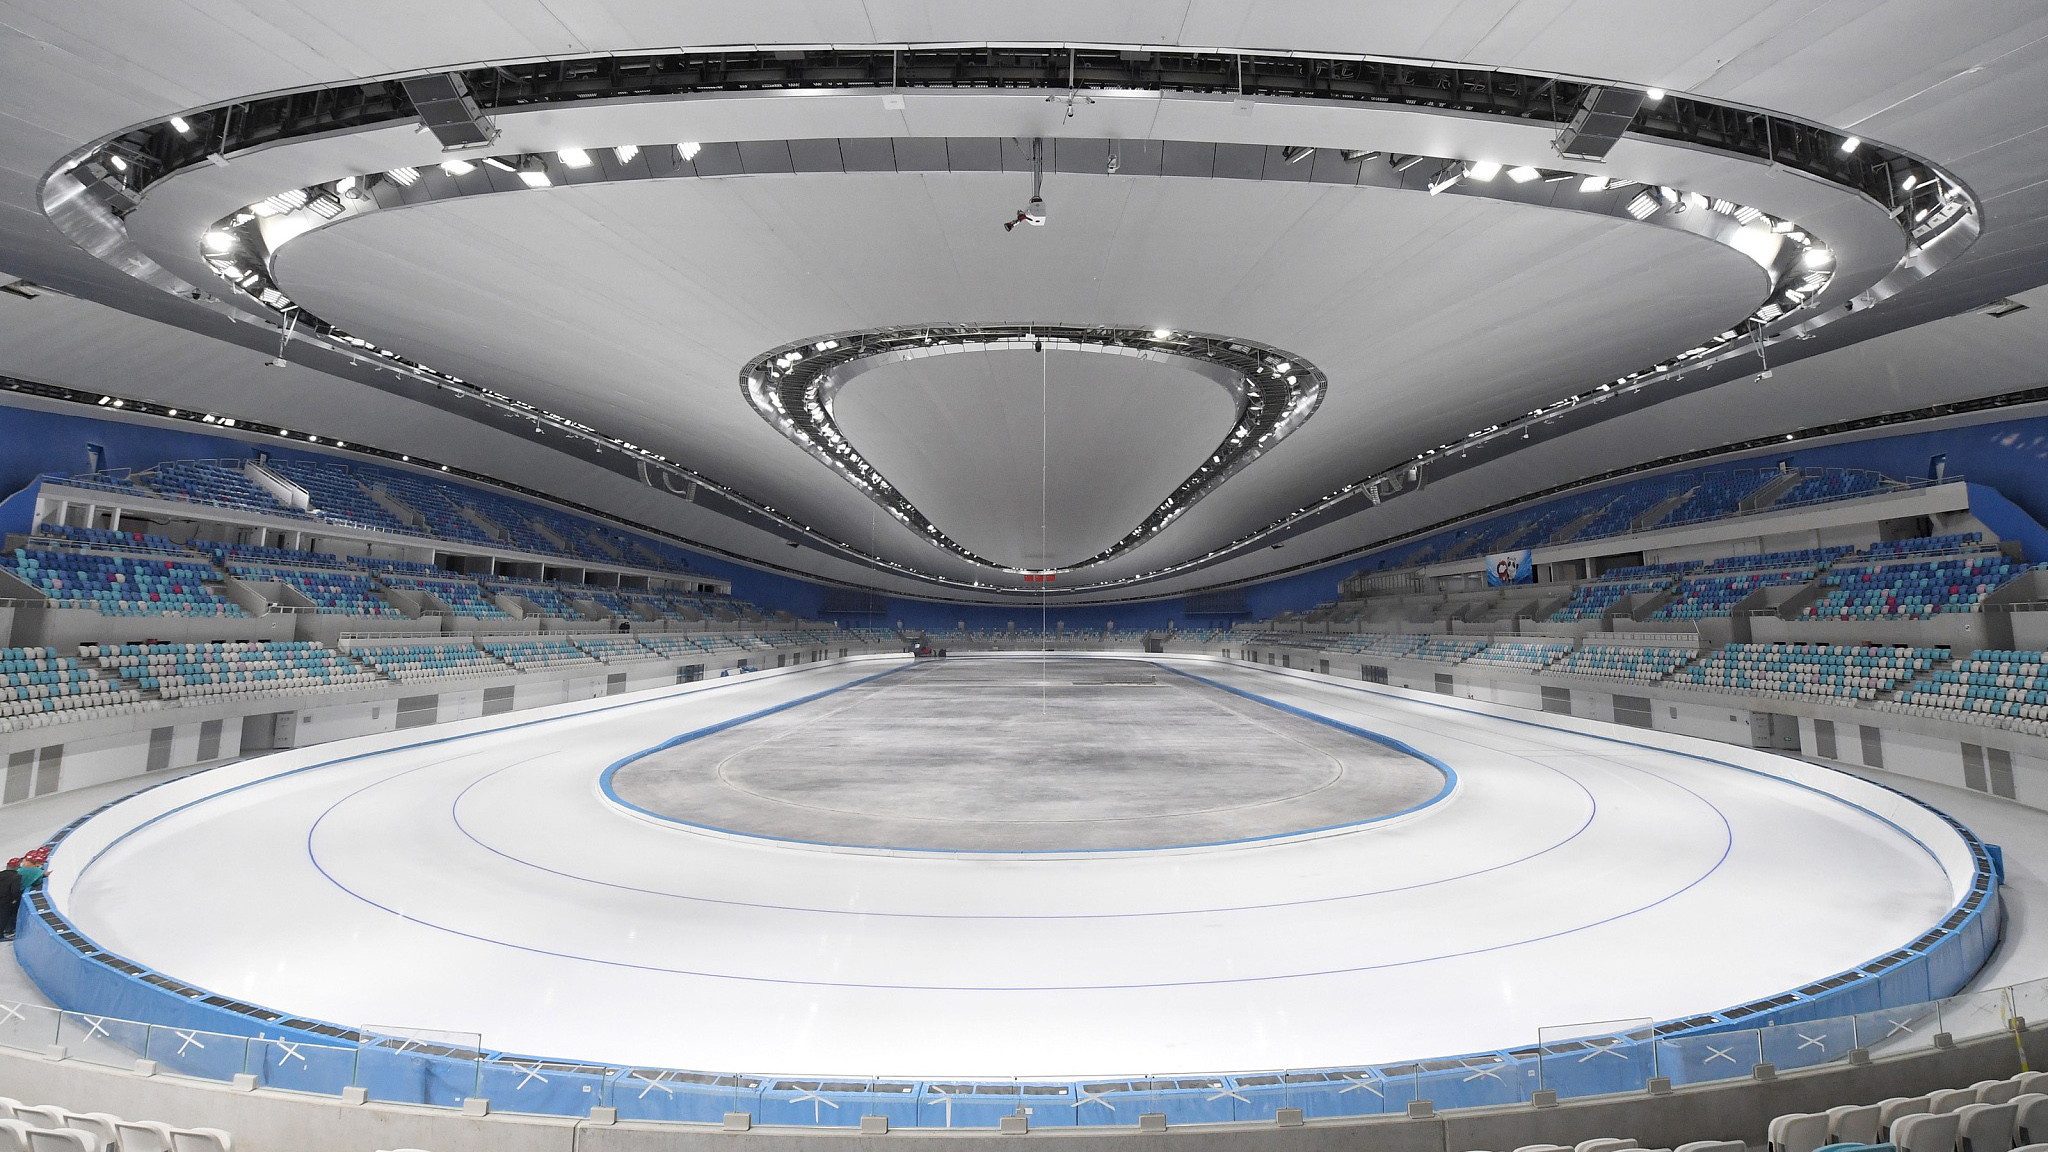 The National Speed Skating Oval is among 17 competition venues that is currently having a 5G base station installed in time for the 2022 Winter Olympic and Paralympic Games ©Beijing 2022